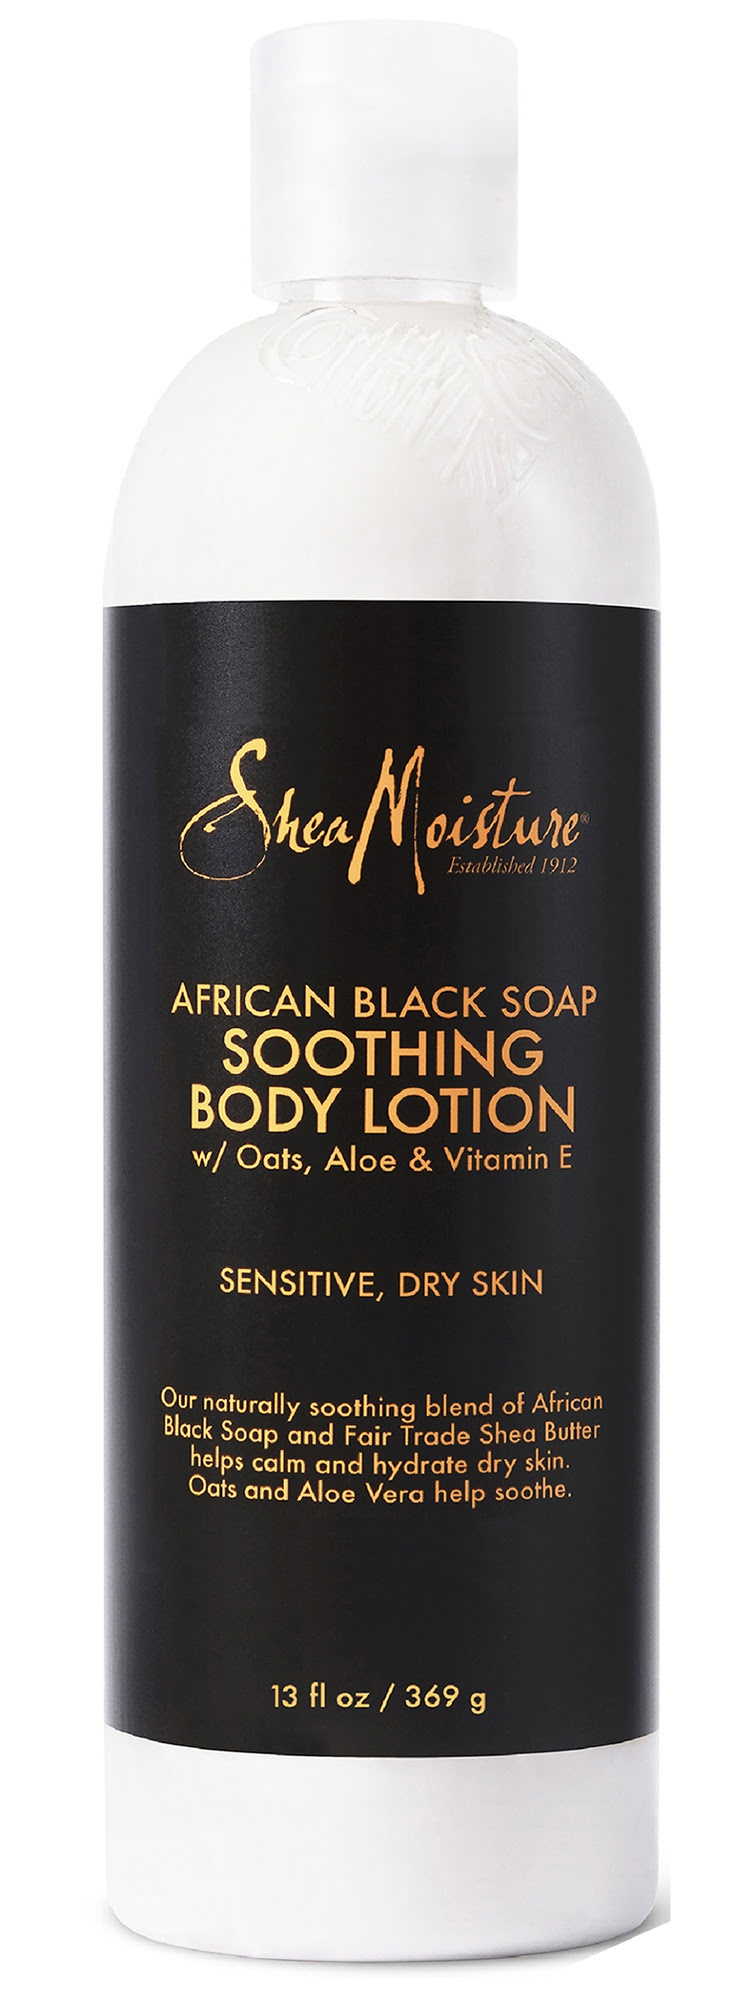 Shea Moisture African Black Soap Soothing Body Lotion